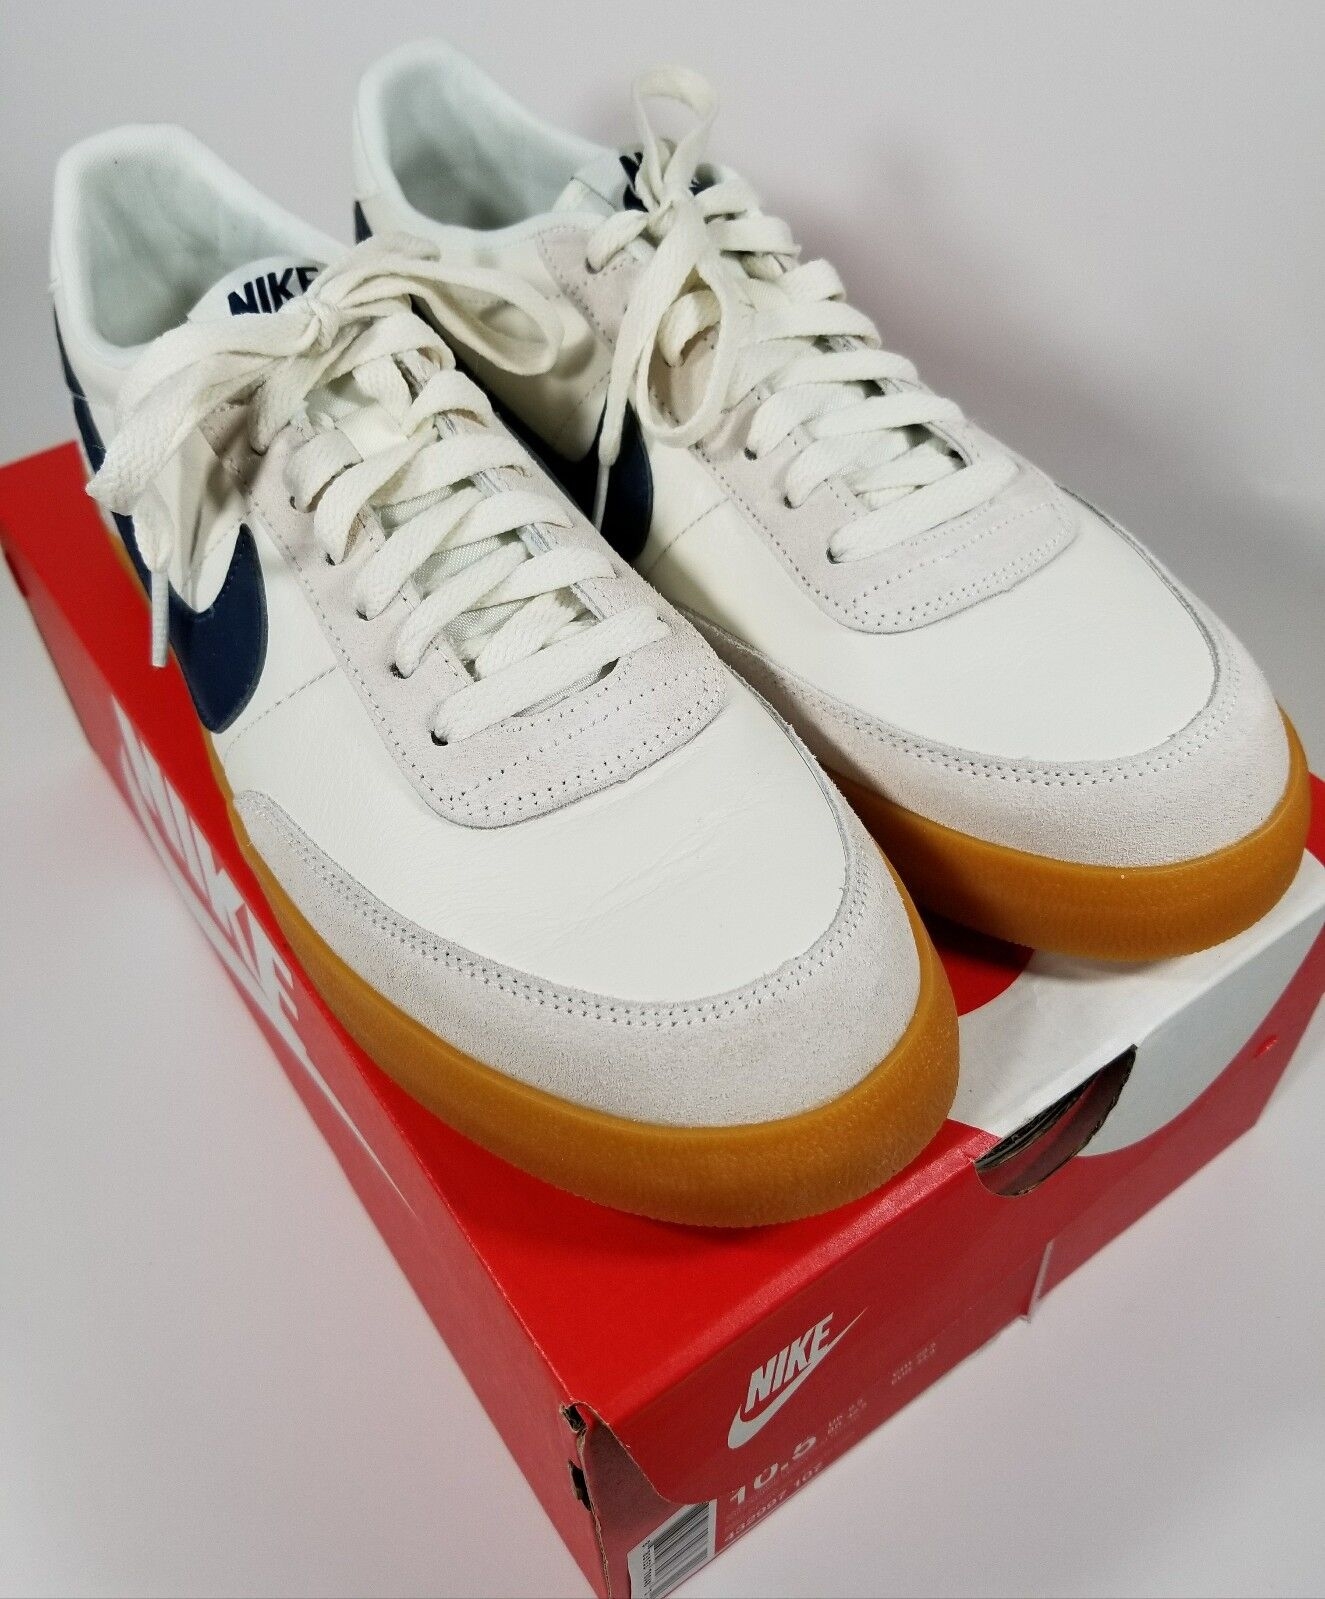 NEW WITH Box Nike x J.Crew Killshot 2 Leather Sneakers sz. 8